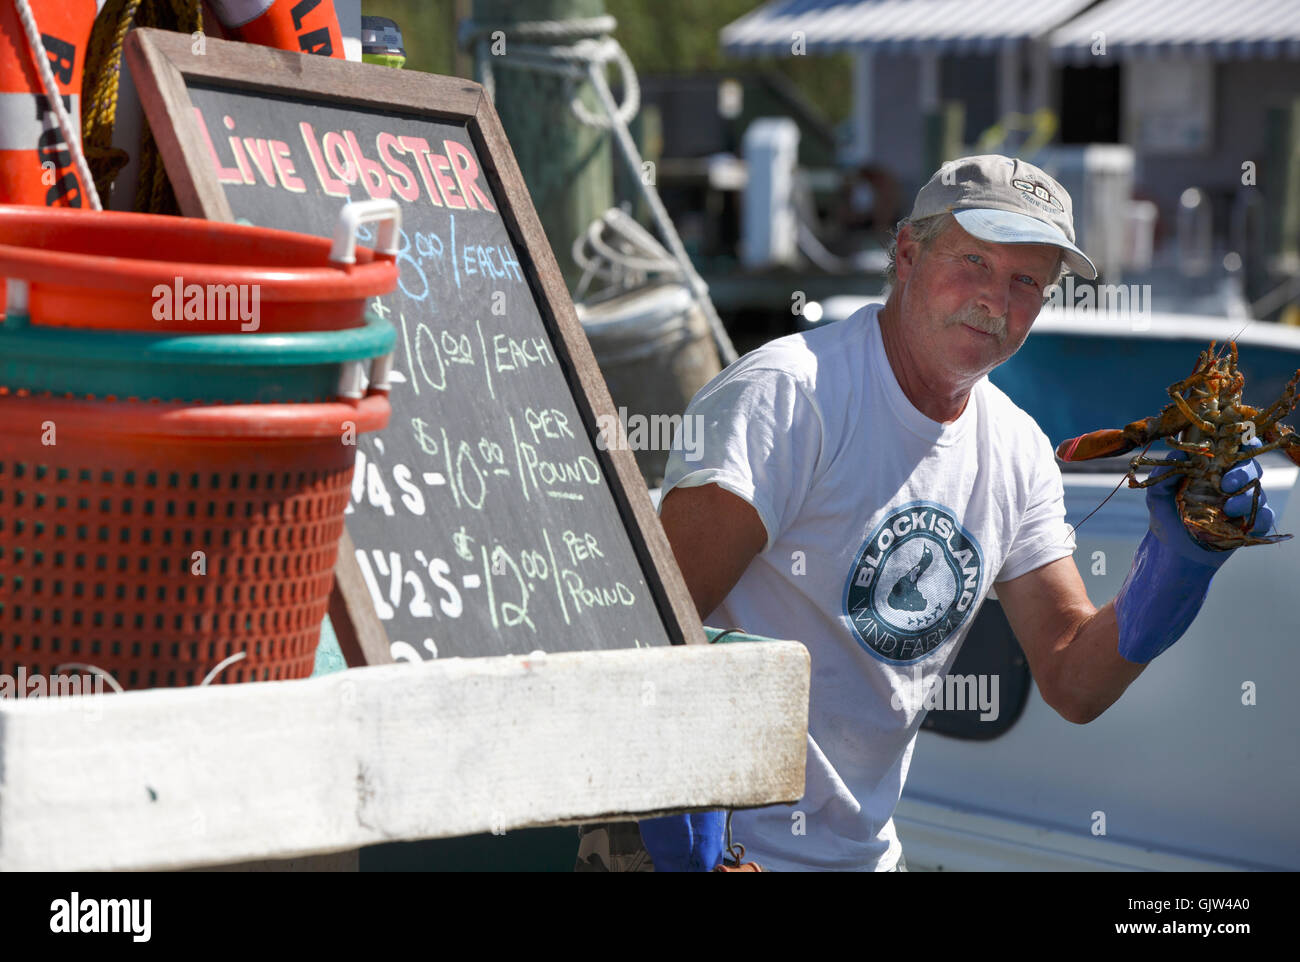 Lobsterman, Block Island, Rhode Island - Stock Image